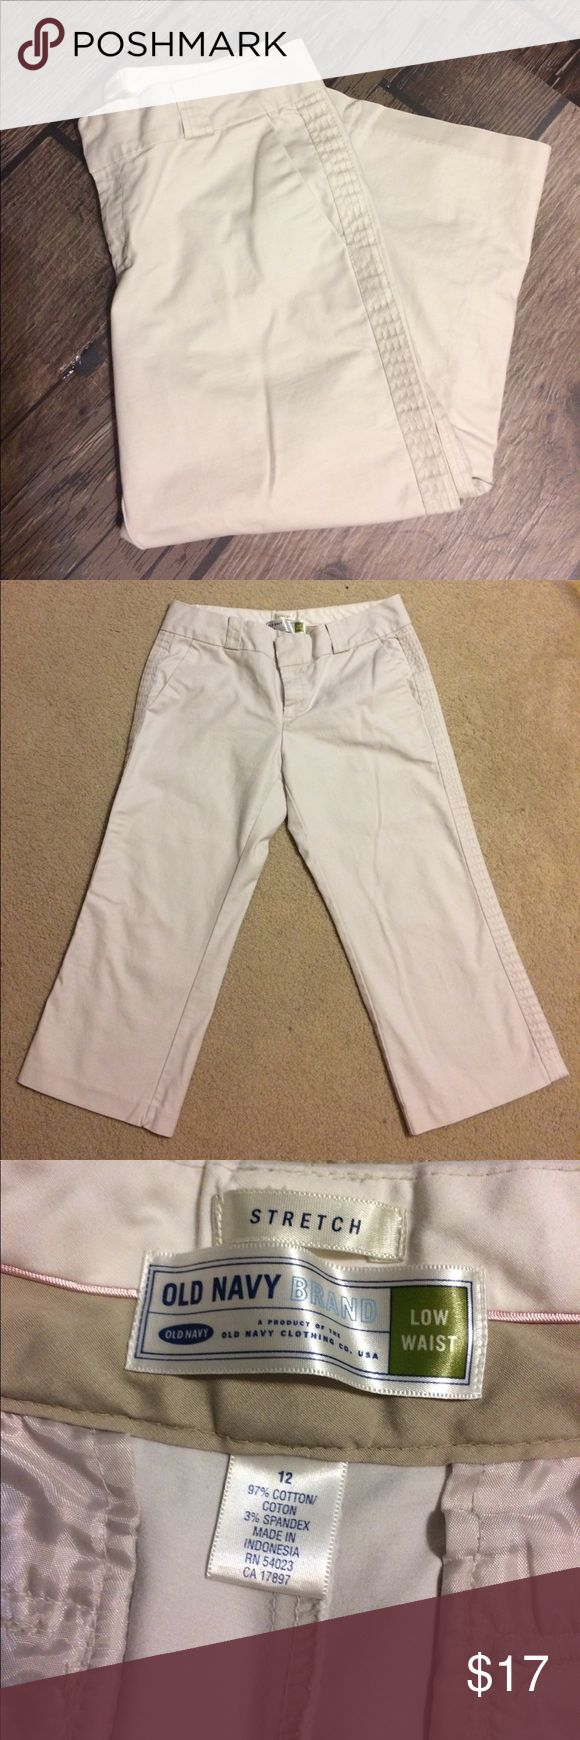 Old Navy Brand Stretch Light Khaki Capris Gently worn. Size 12 Old Navy Brand Stretch Light Khaki Capris. 97% cotton, 3% spandex. 22 inch inseam. No rips, stains or tears. Non-smoking home. Old Navy Pants Capris